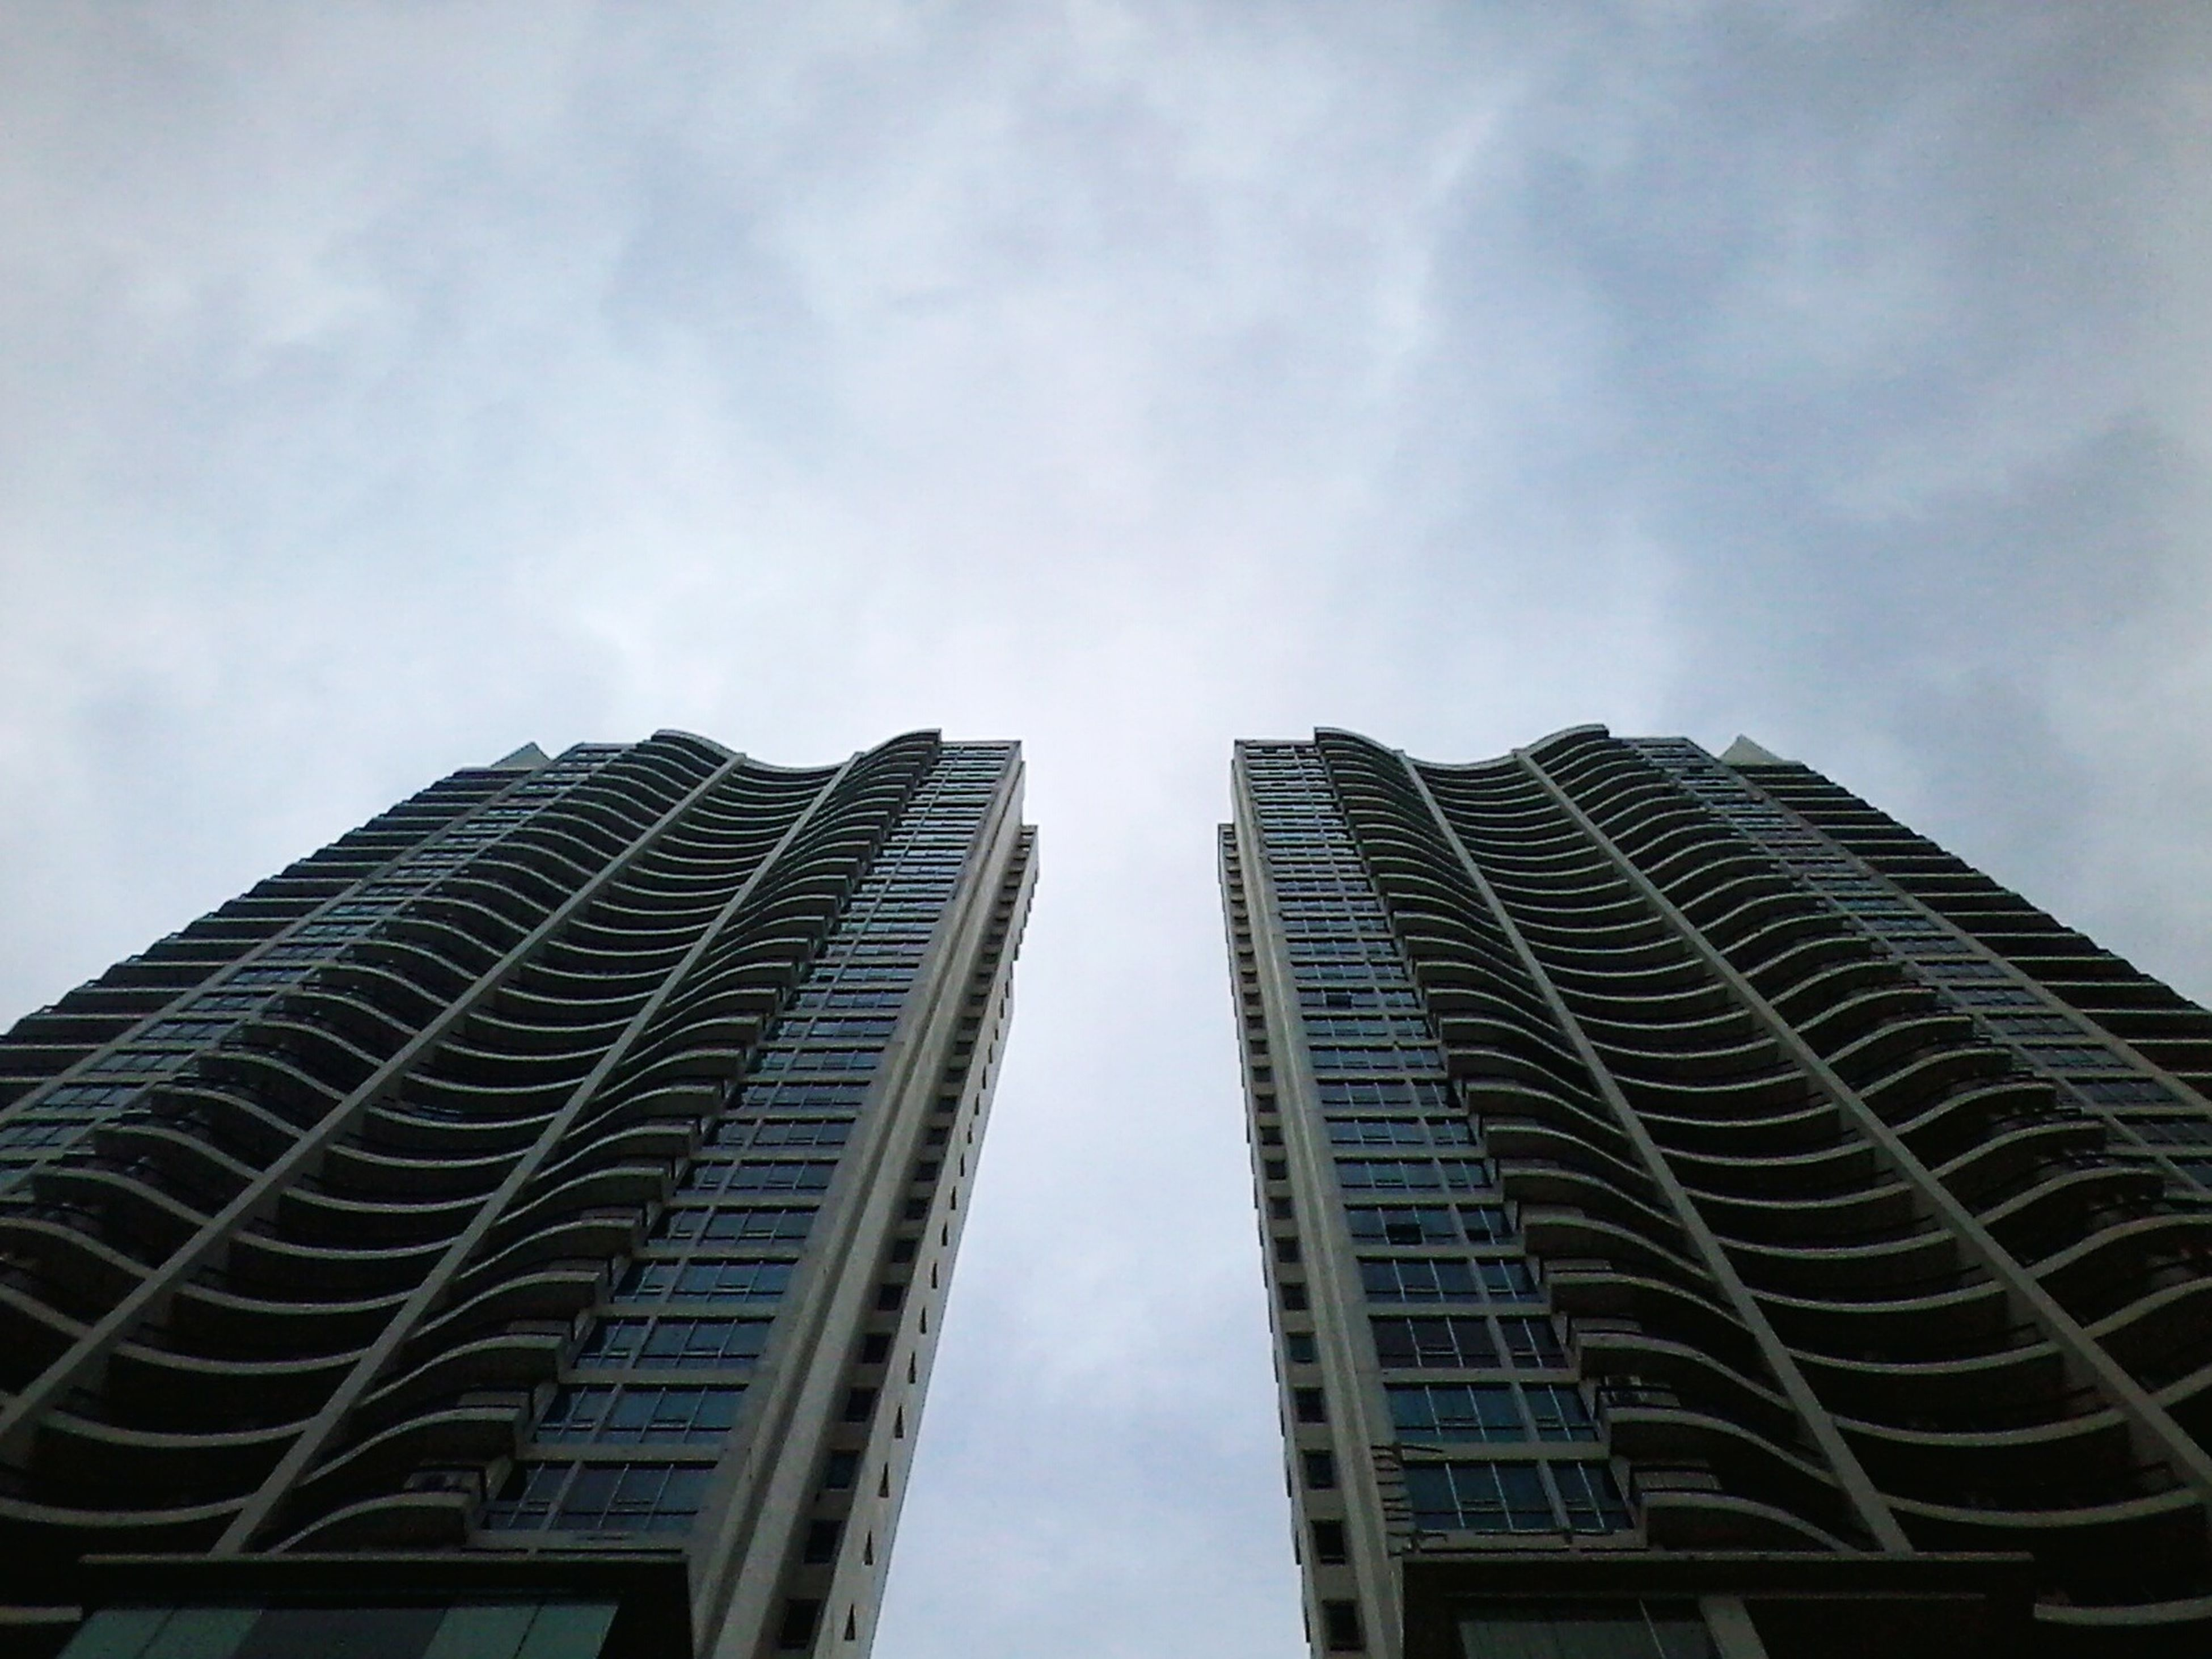 architecture, building exterior, low angle view, built structure, modern, skyscraper, tall - high, office building, sky, city, tower, glass - material, cloud - sky, building, tall, day, cloud, outdoors, reflection, no people